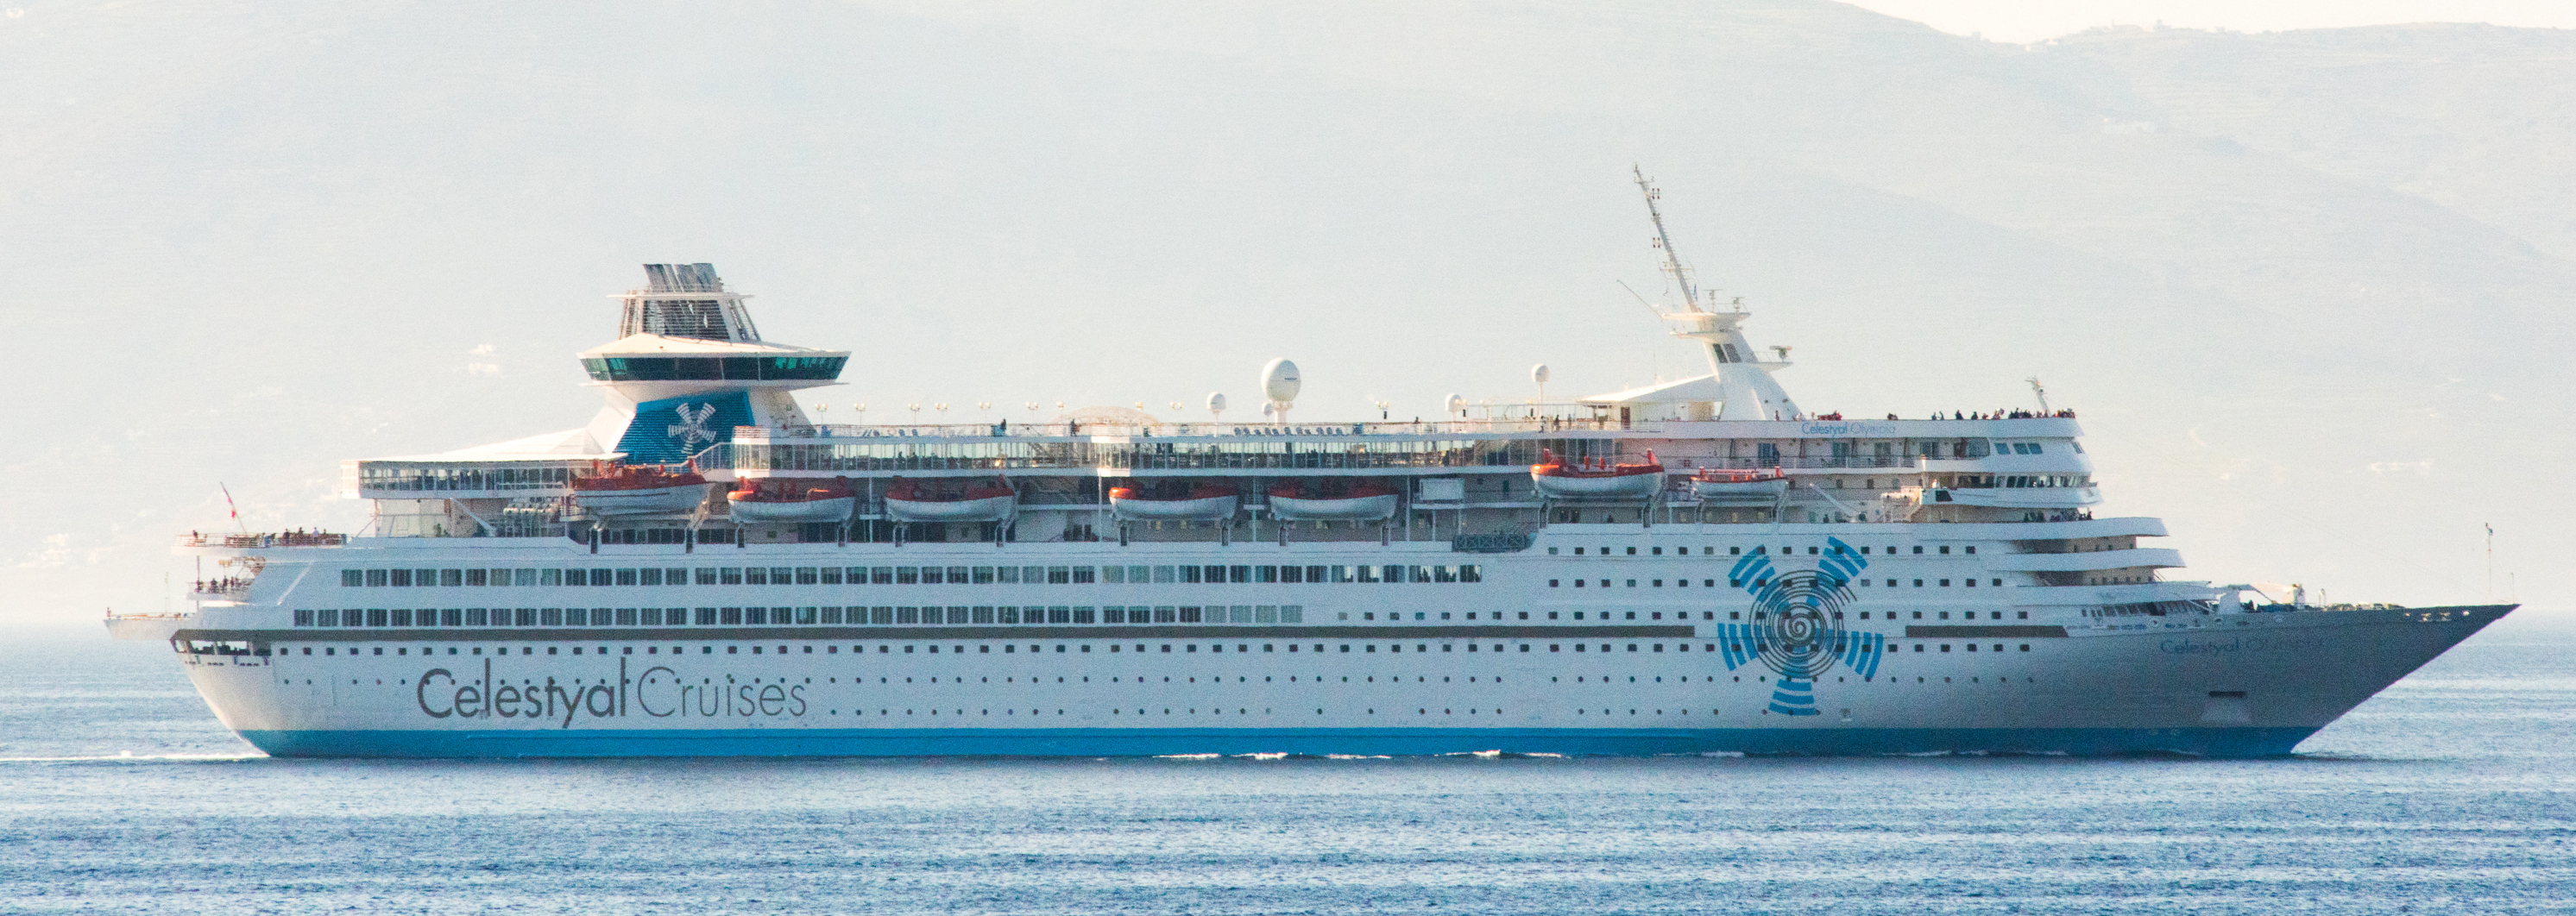 Iconic Aegean 3 night Cruise on Celestyal Olympia